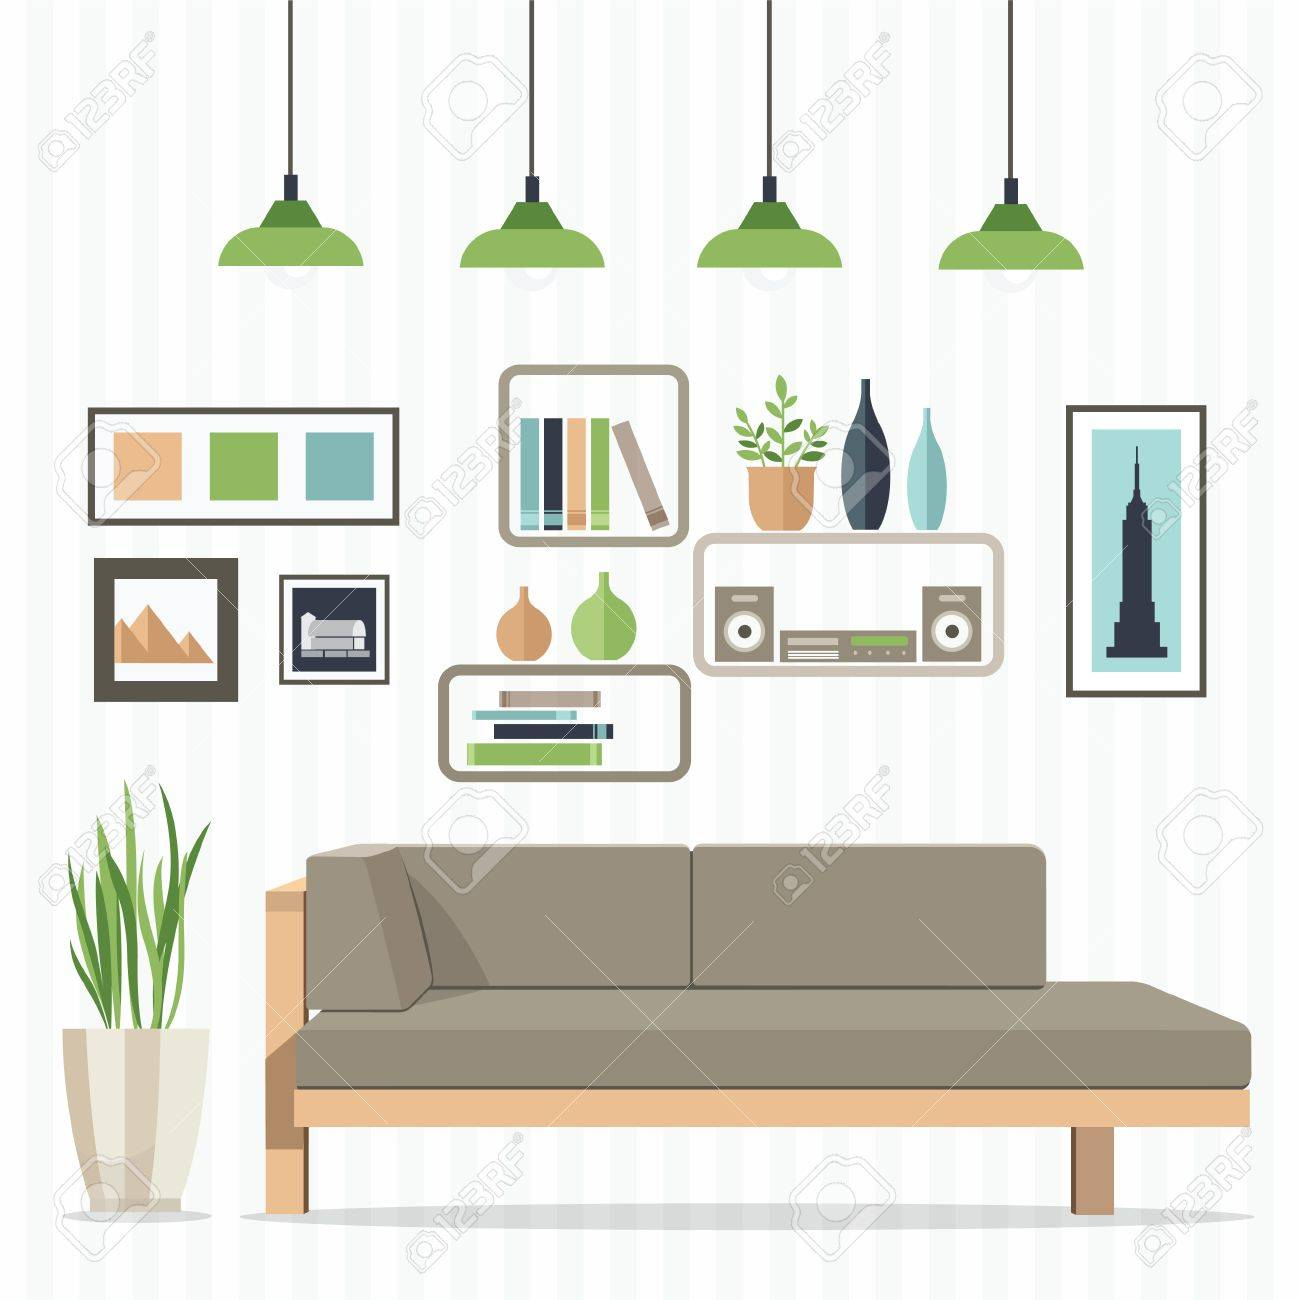 Flat Design Vector Illustration Of Modern Home Interior With